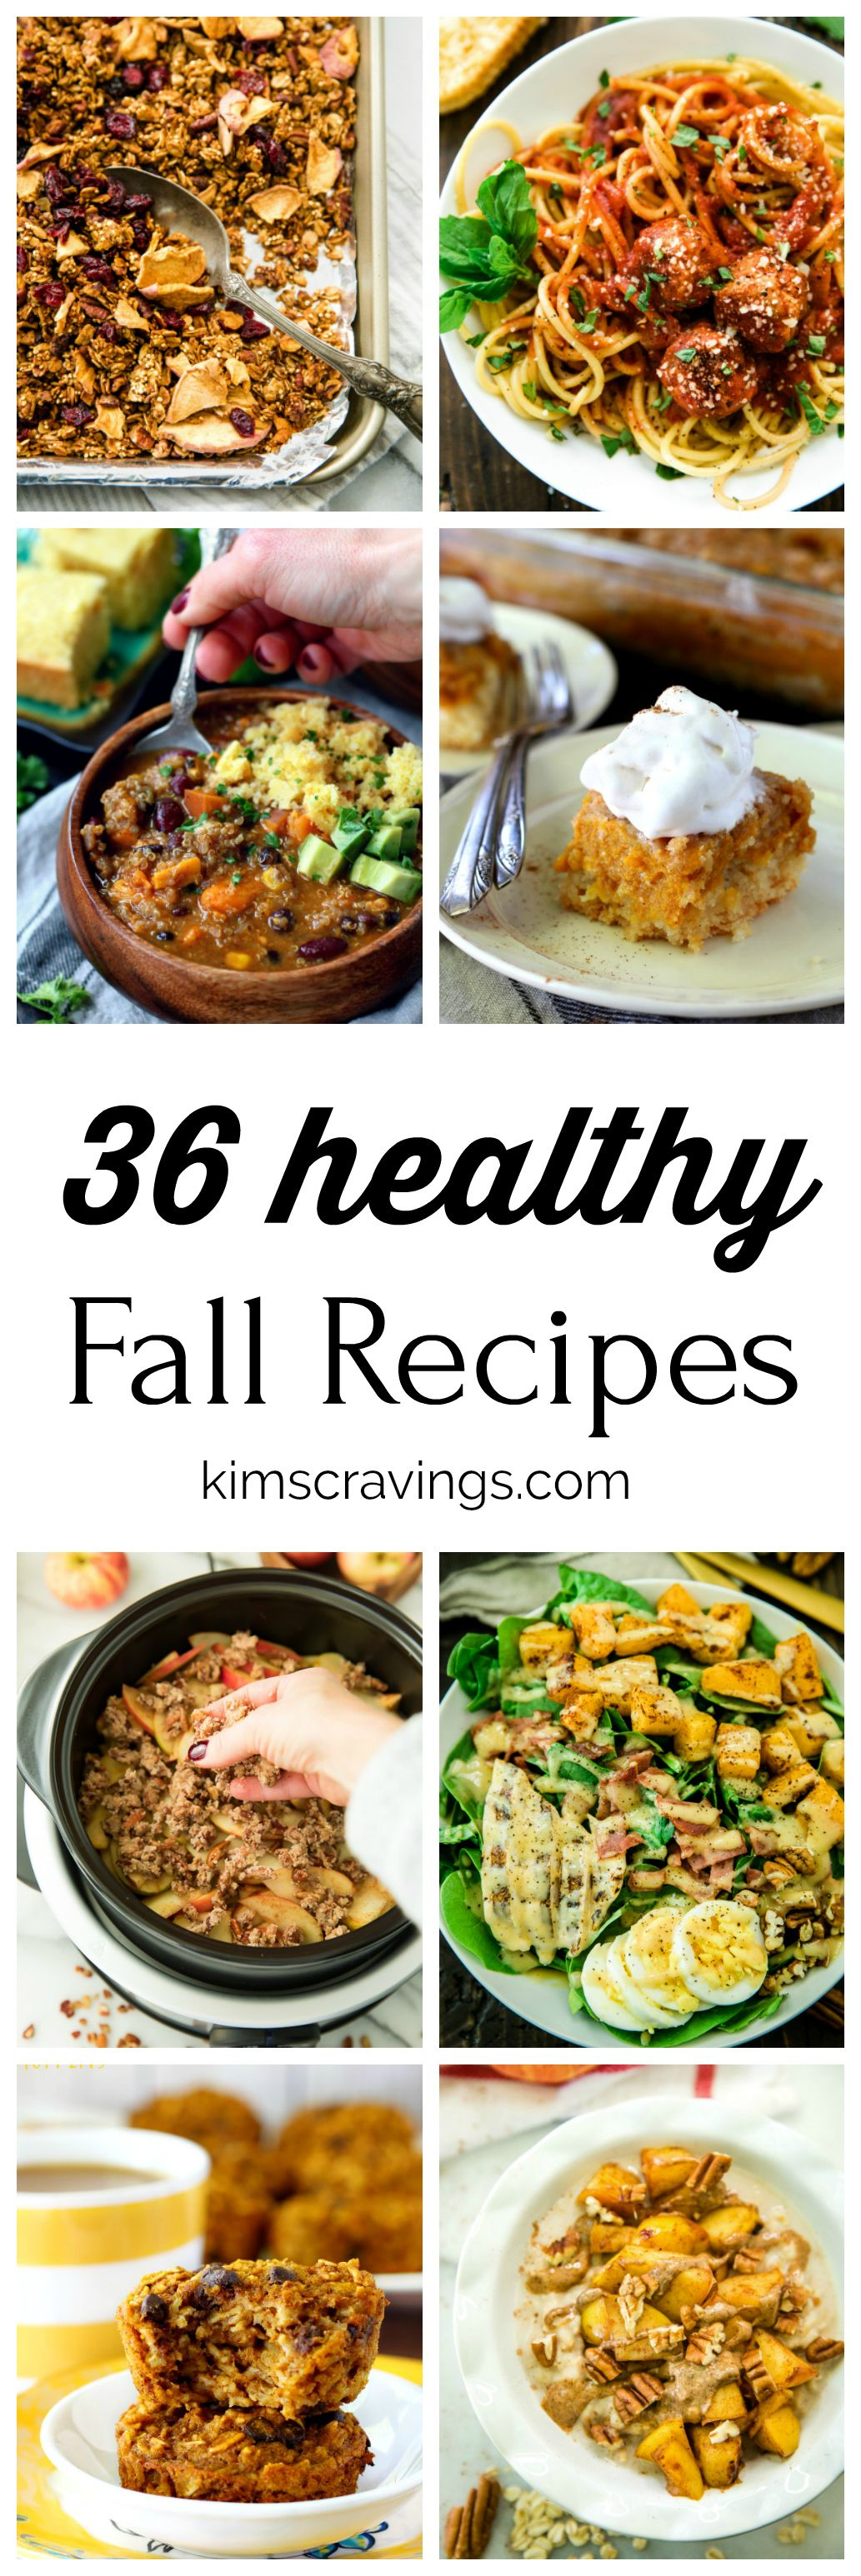 36 Healthy Fall Recipes #falldinnerrecipes